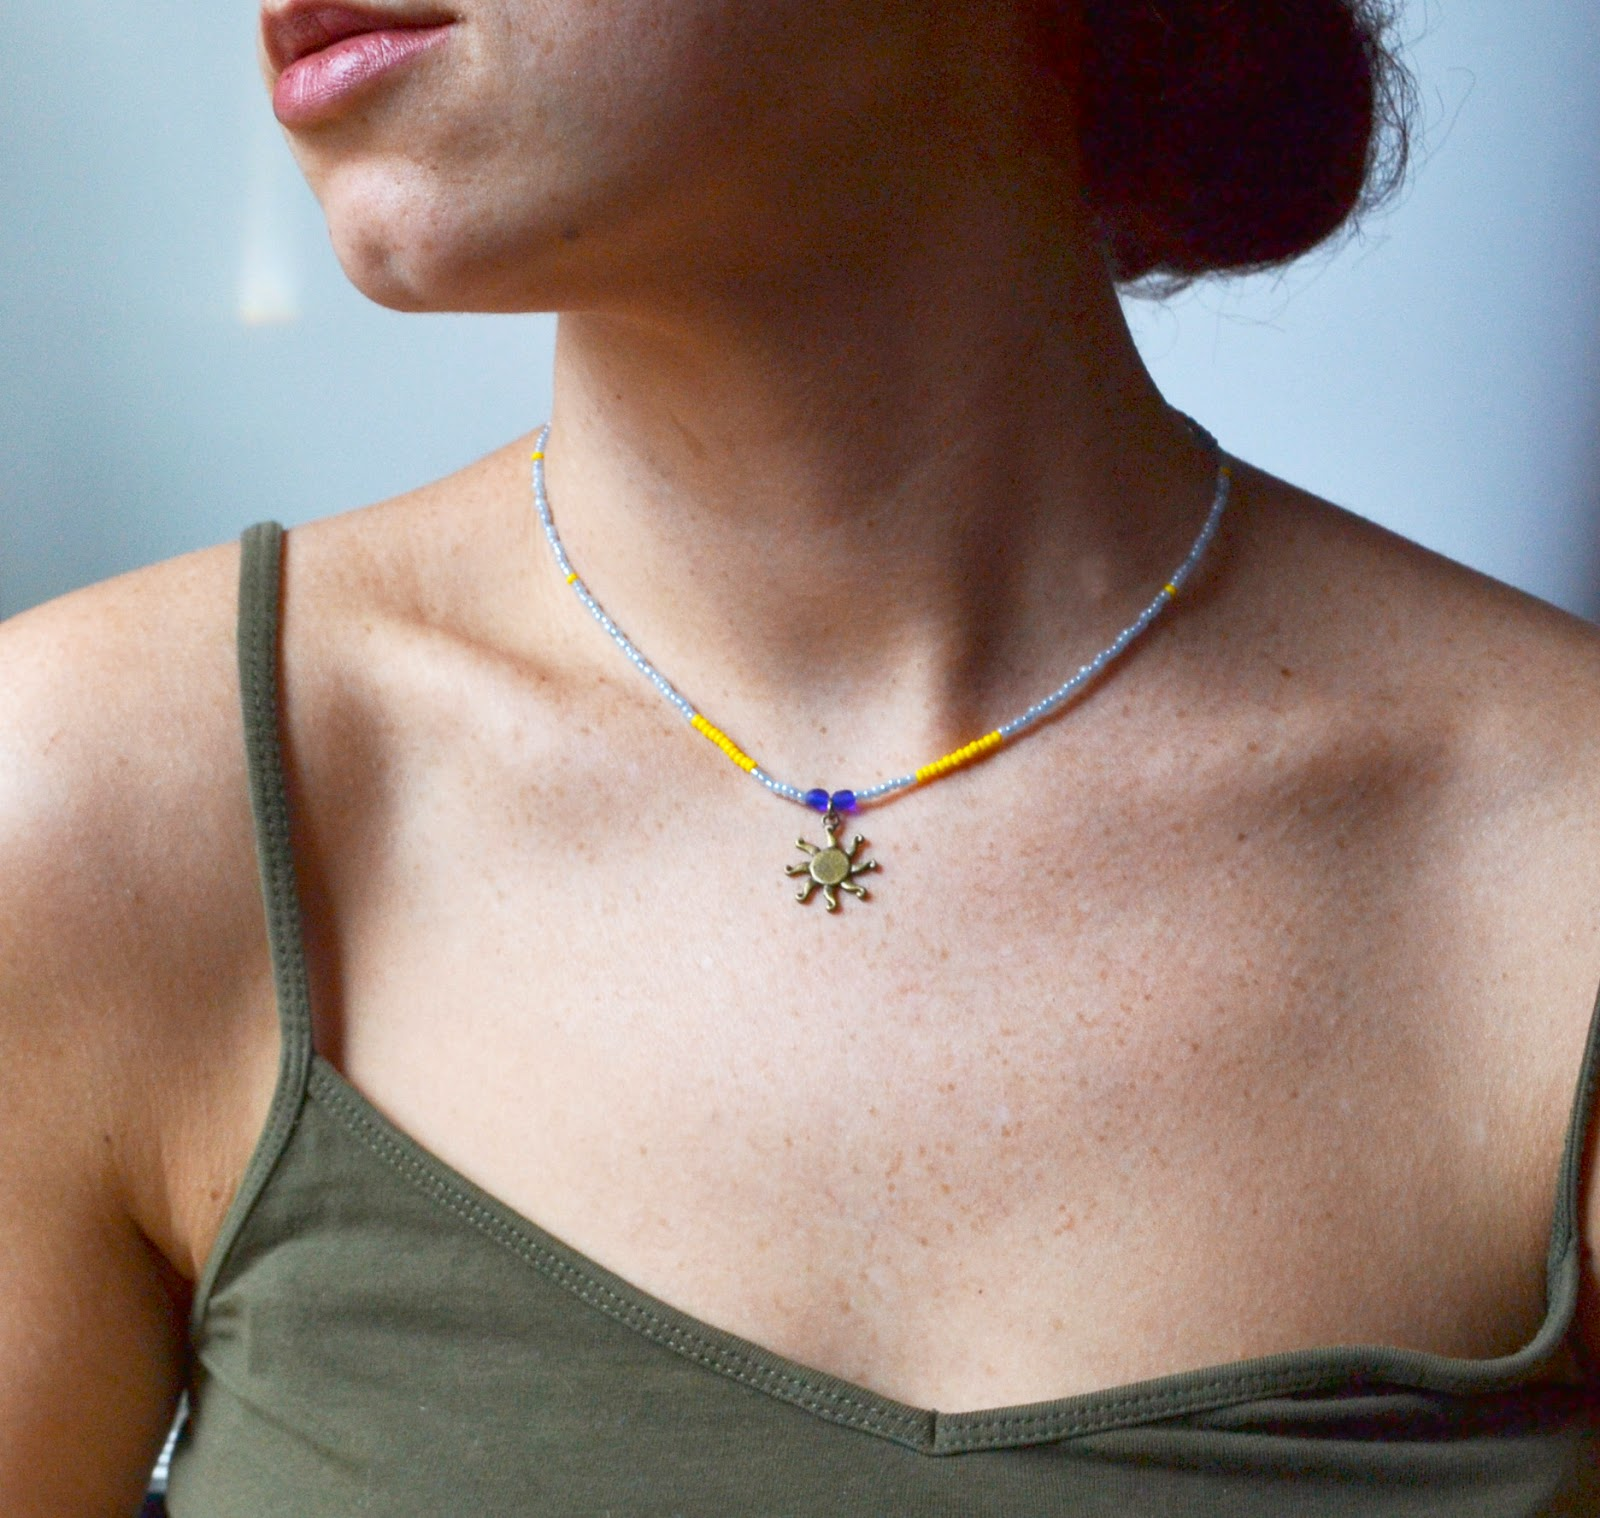 http://www.storenvy.com/products/5932051-sun-necklace-color-blocking-summertime-jewelry-colorful